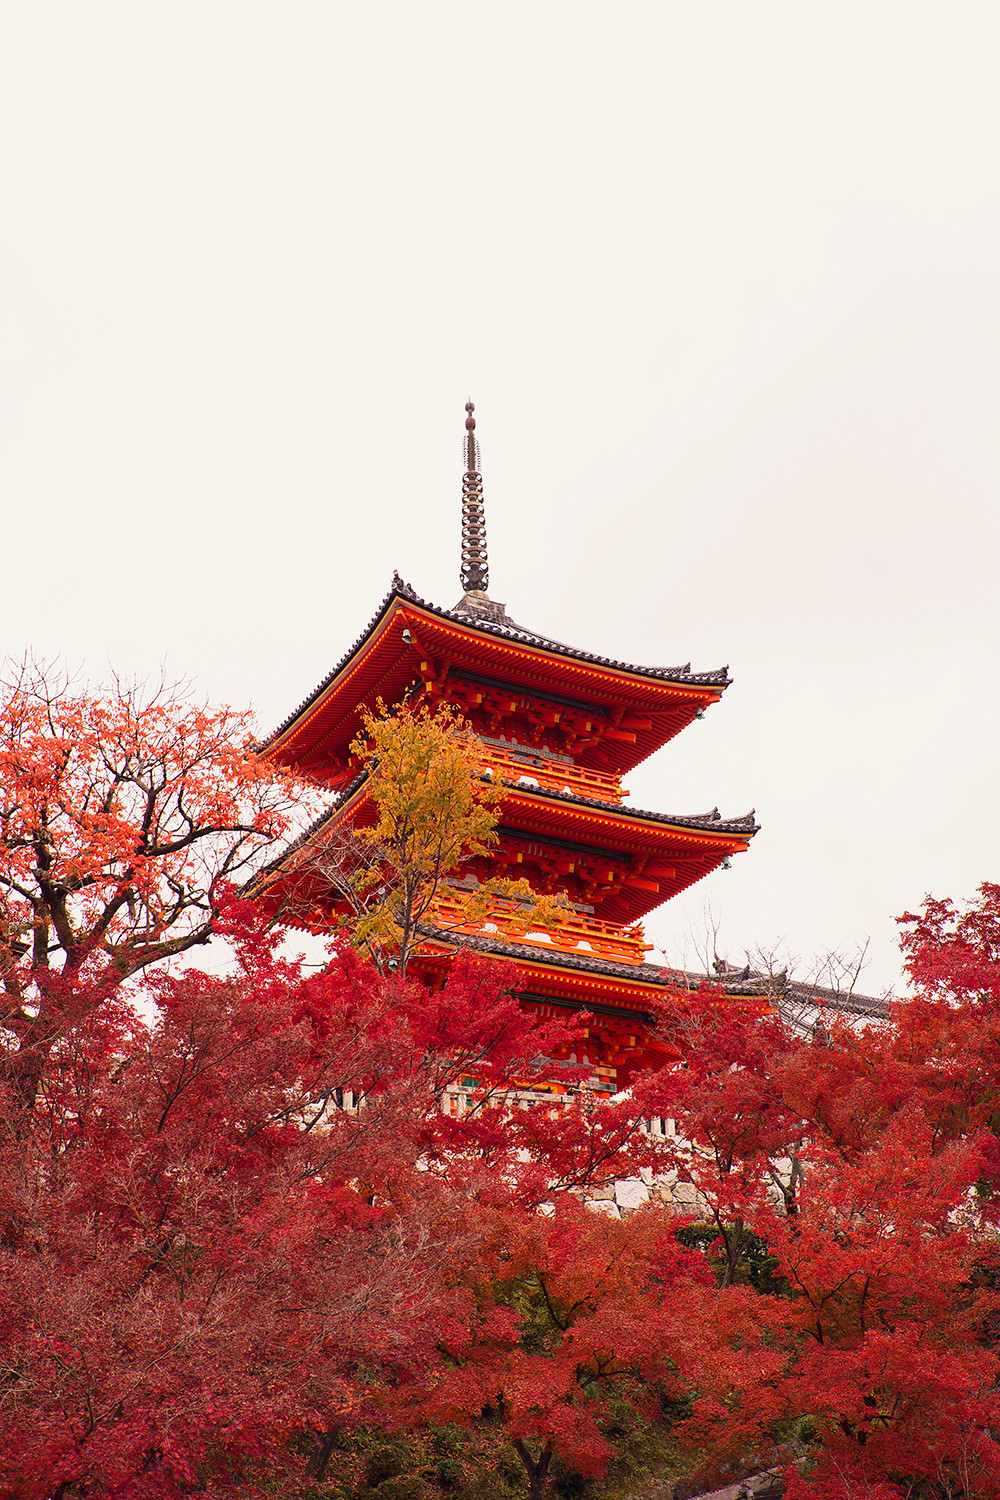 16kyoto-kiyomizudera-pagoda-autumn-japan-landscape-architecture-travel